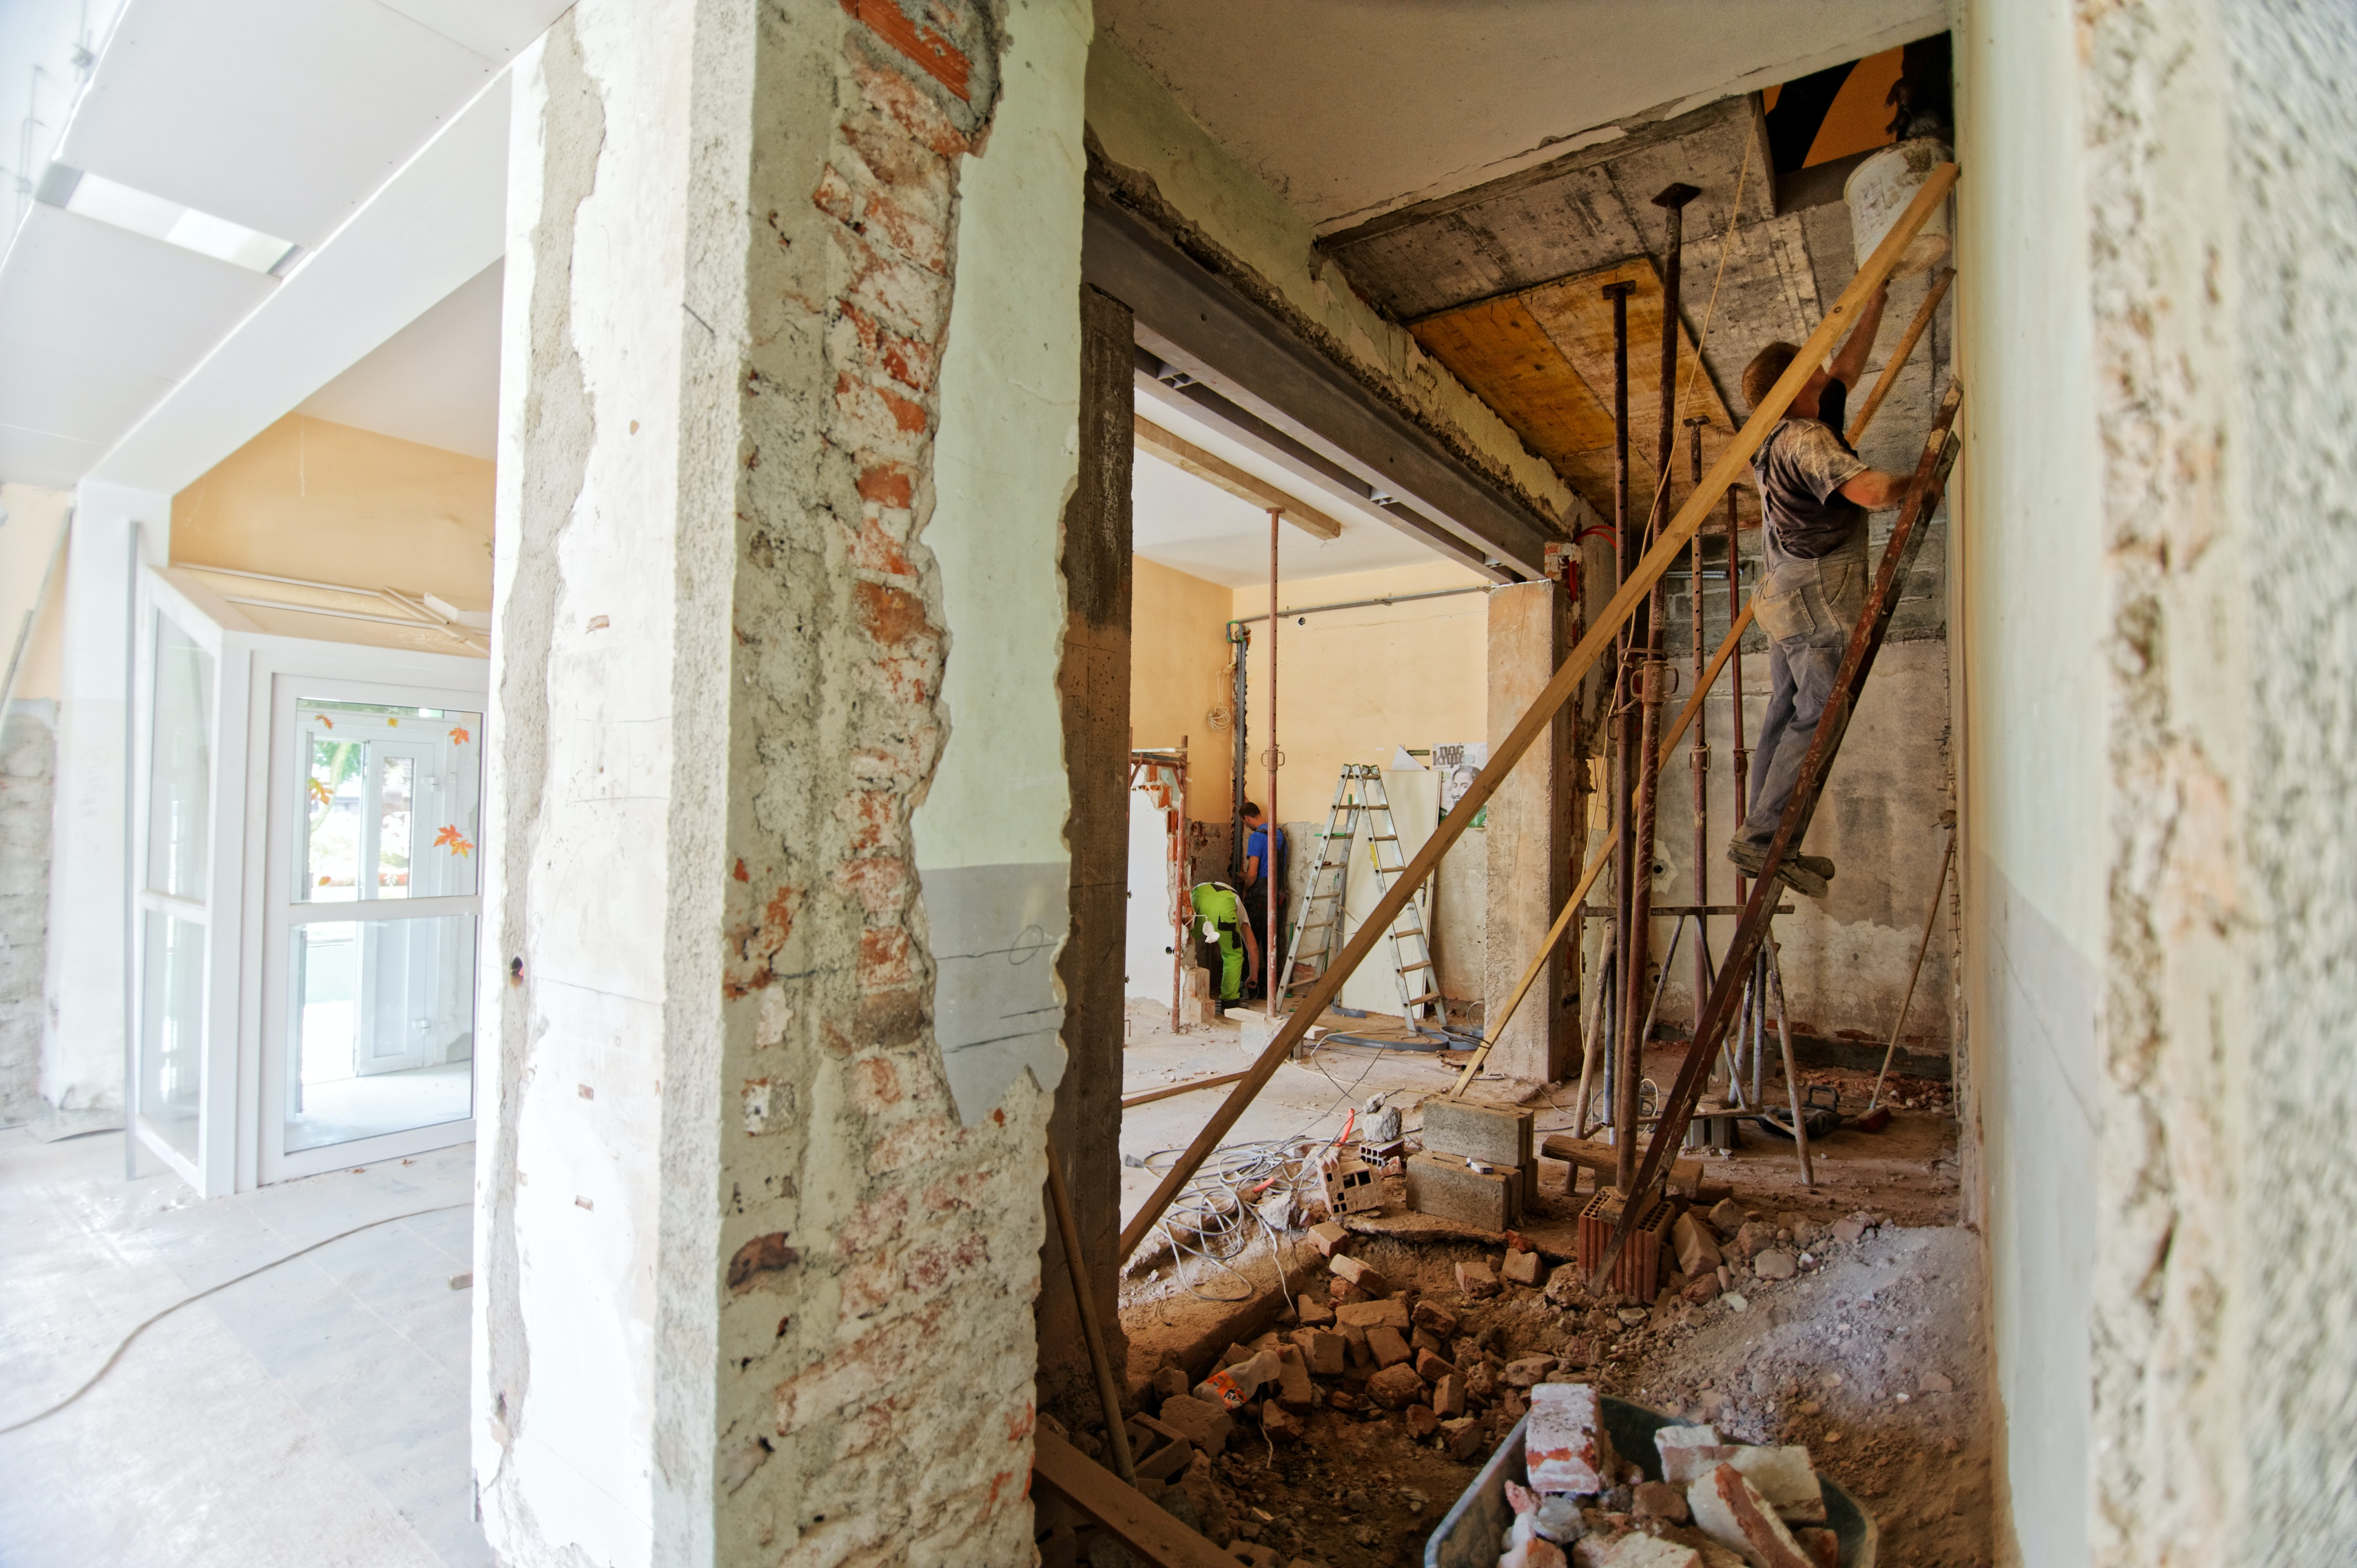 5 Ways to Fund a Renovation